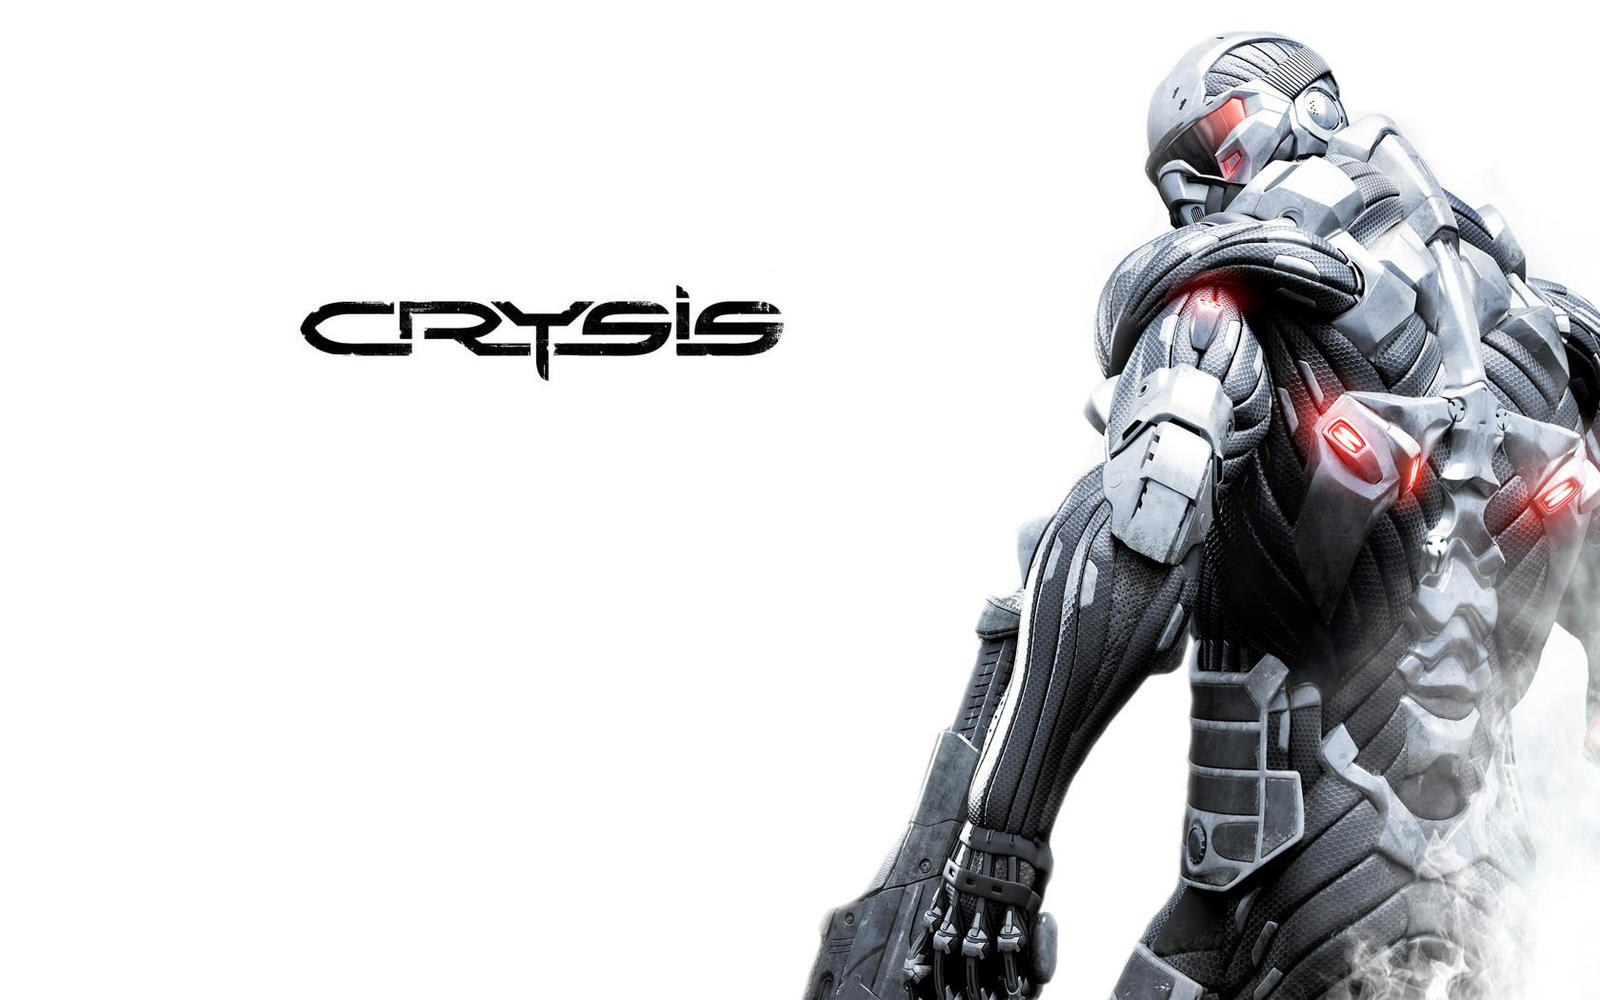 crysis 4 wallpaper hd-#31